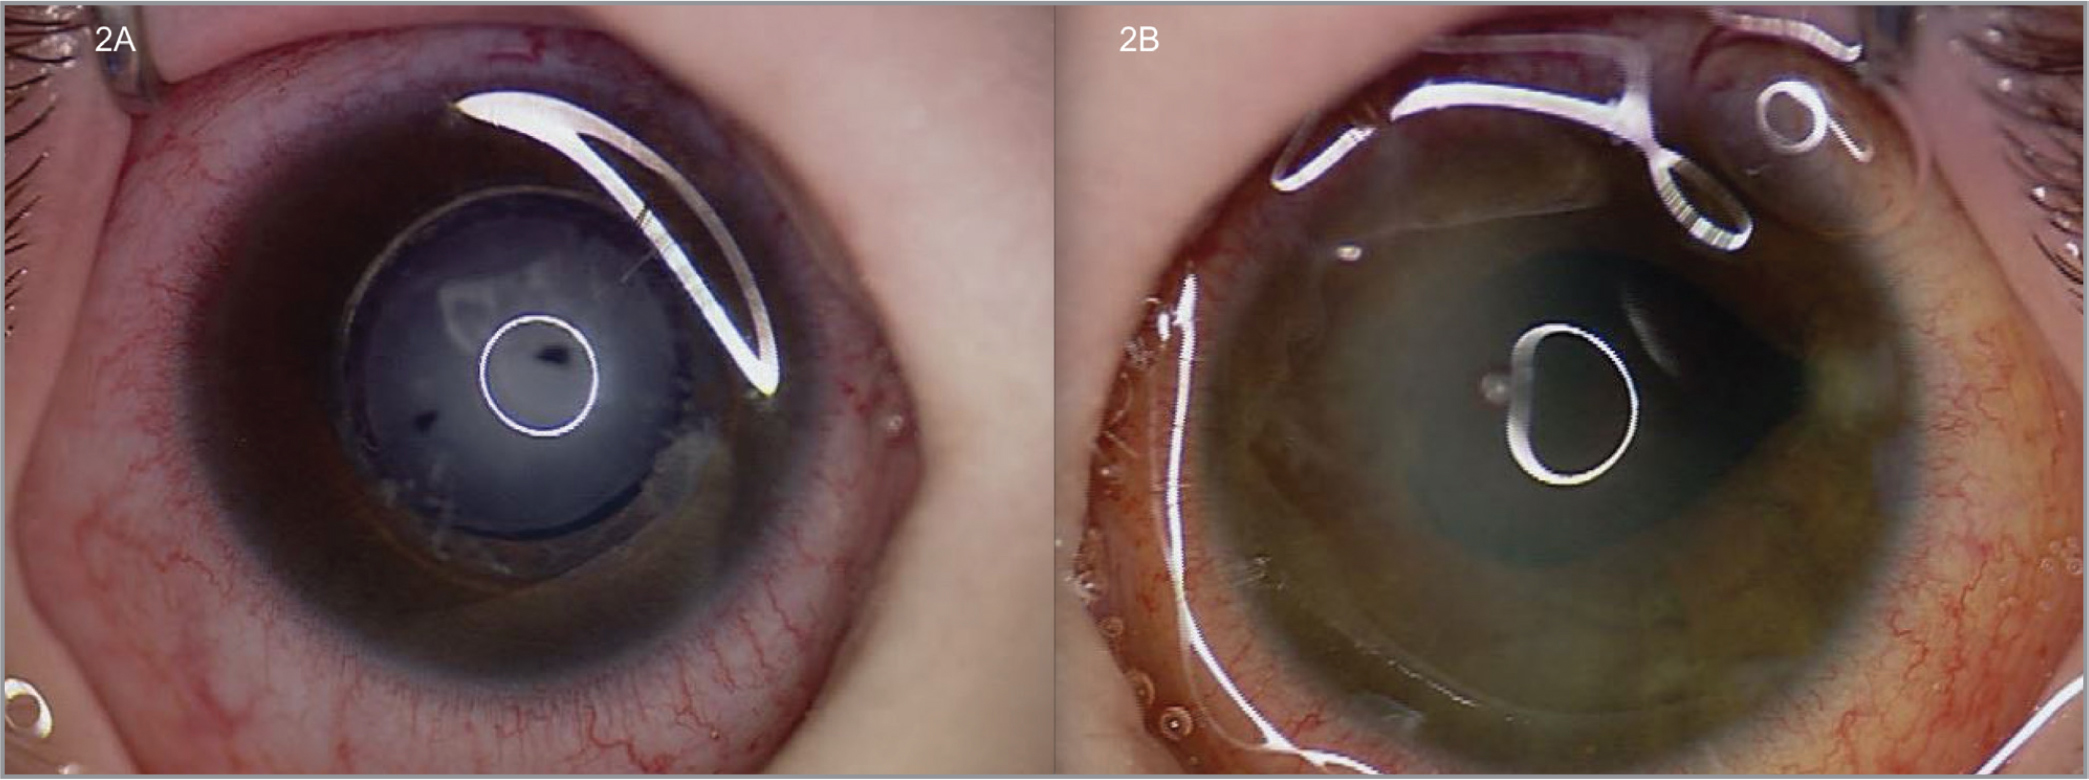 Examination under anesthesia of patient from Case 2 at postoperative week 1, where patient disclosed new onset of pupillary block glaucoma with intraocular pressure (IOP) of 29 mm Hg in the right eye (A) and a relatively clear cornea, shallow anterior chamber, and an IOP of 5 mm Hg in the left eye (B).